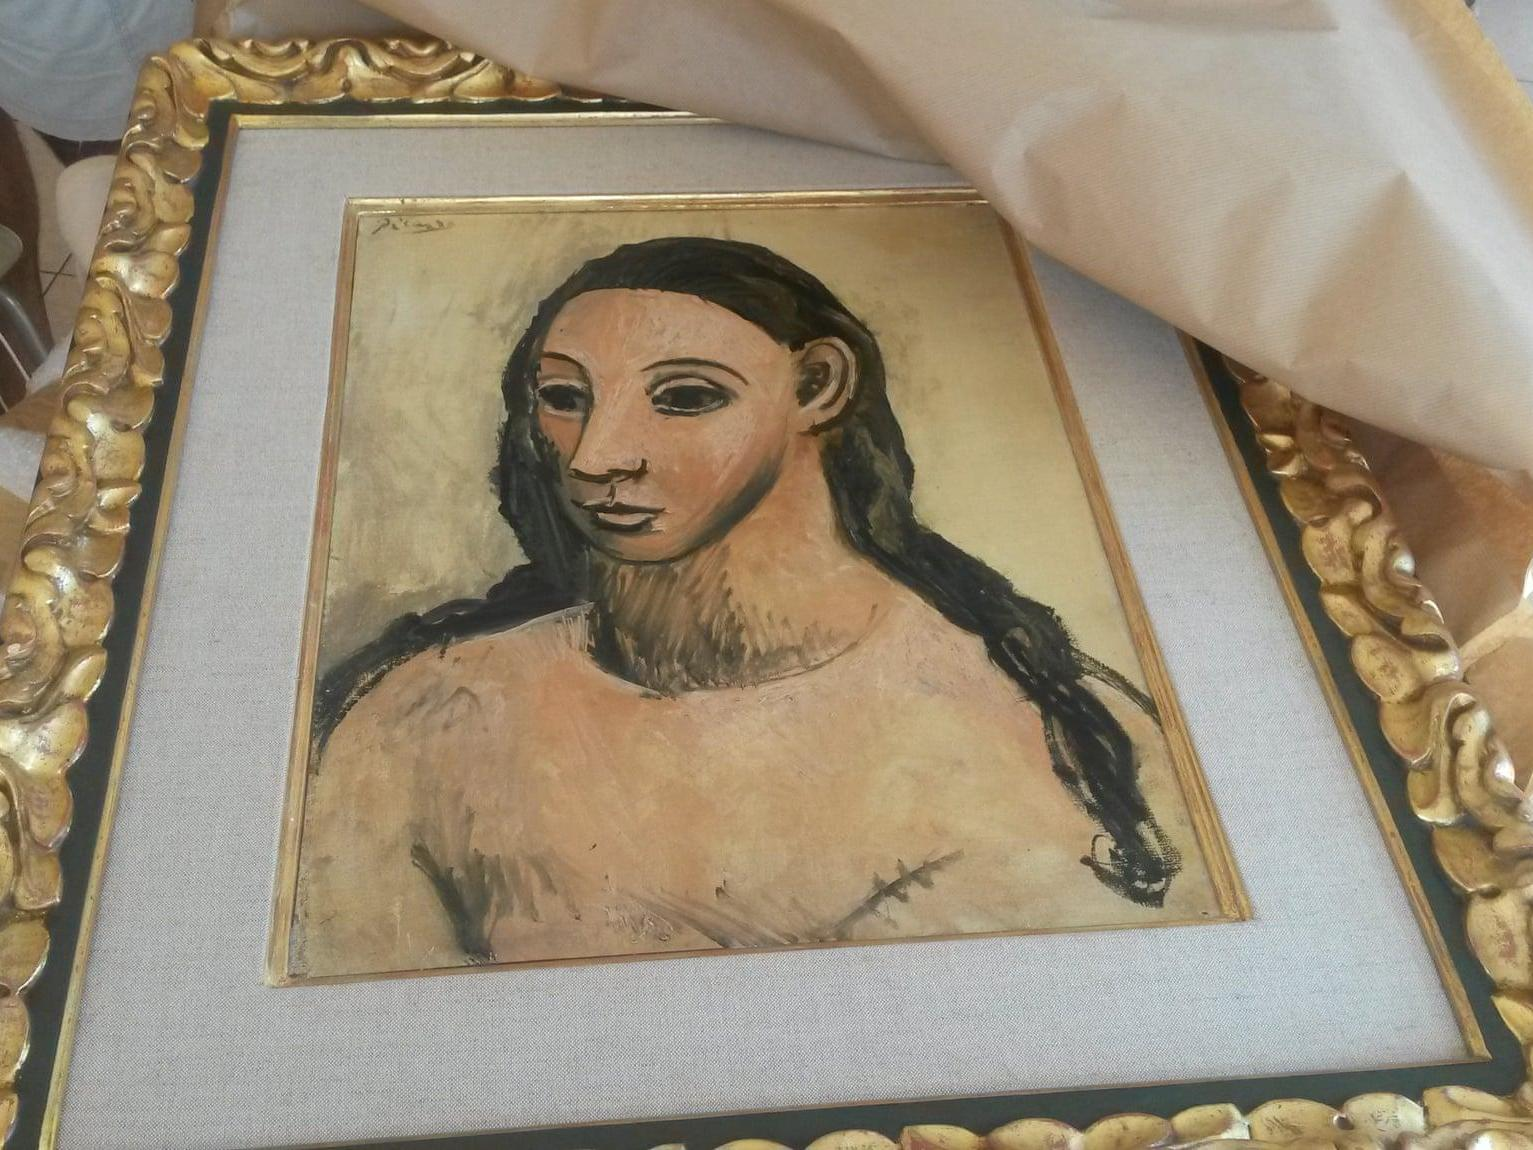 Jaime Botin: Billionaire found guilty of trying to smuggle Picasso from Spain to London